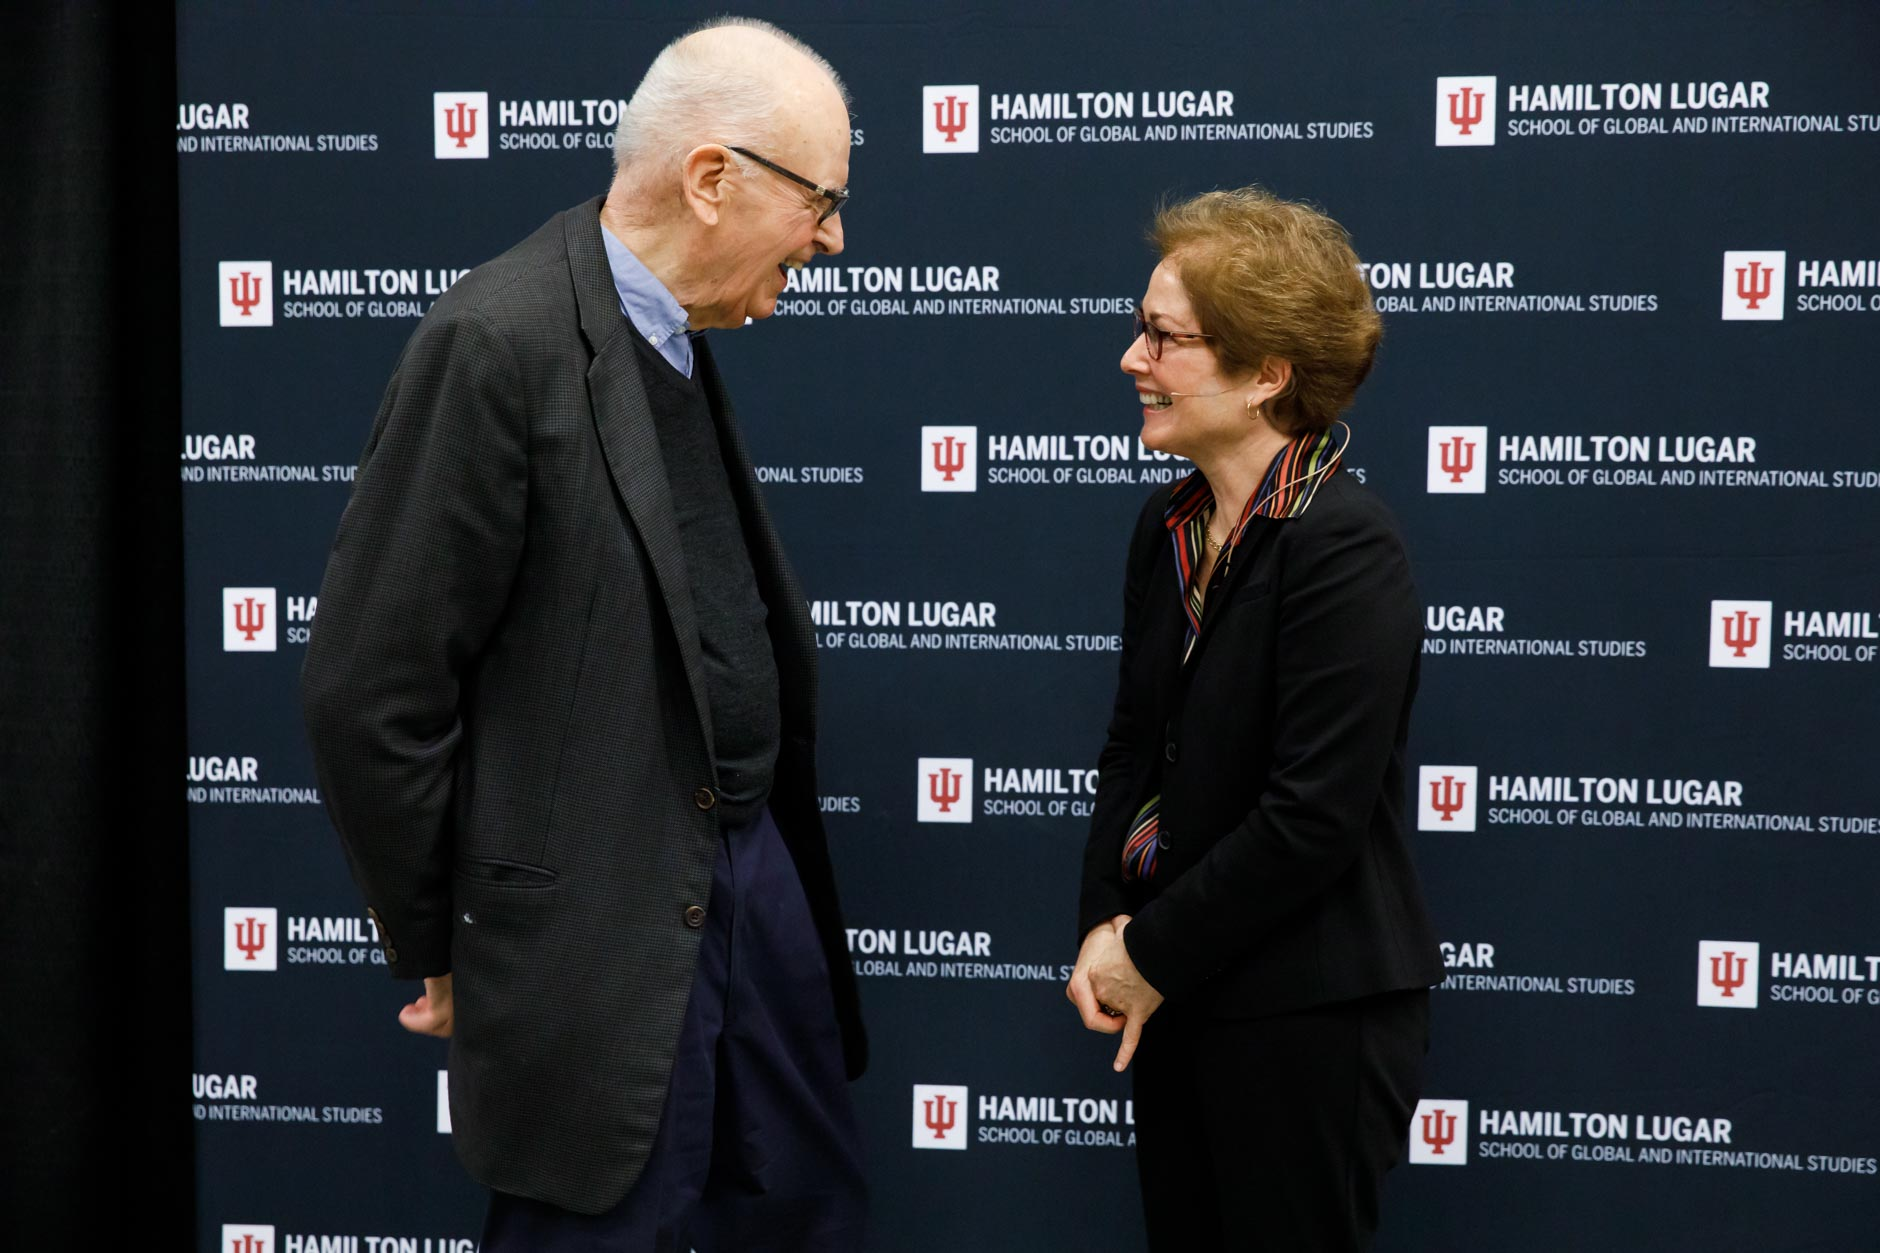 Former U.S. Rep. Lee H. Hamilton, Director of The Center on Congress at Indiana University, speaks with former U.S. Ambassador to Ukraine Marie Yovanovitch during the America's Role in the World Conference at IU Bloomington on Friday, March 6, 2020. (James Brosher/Indiana University)